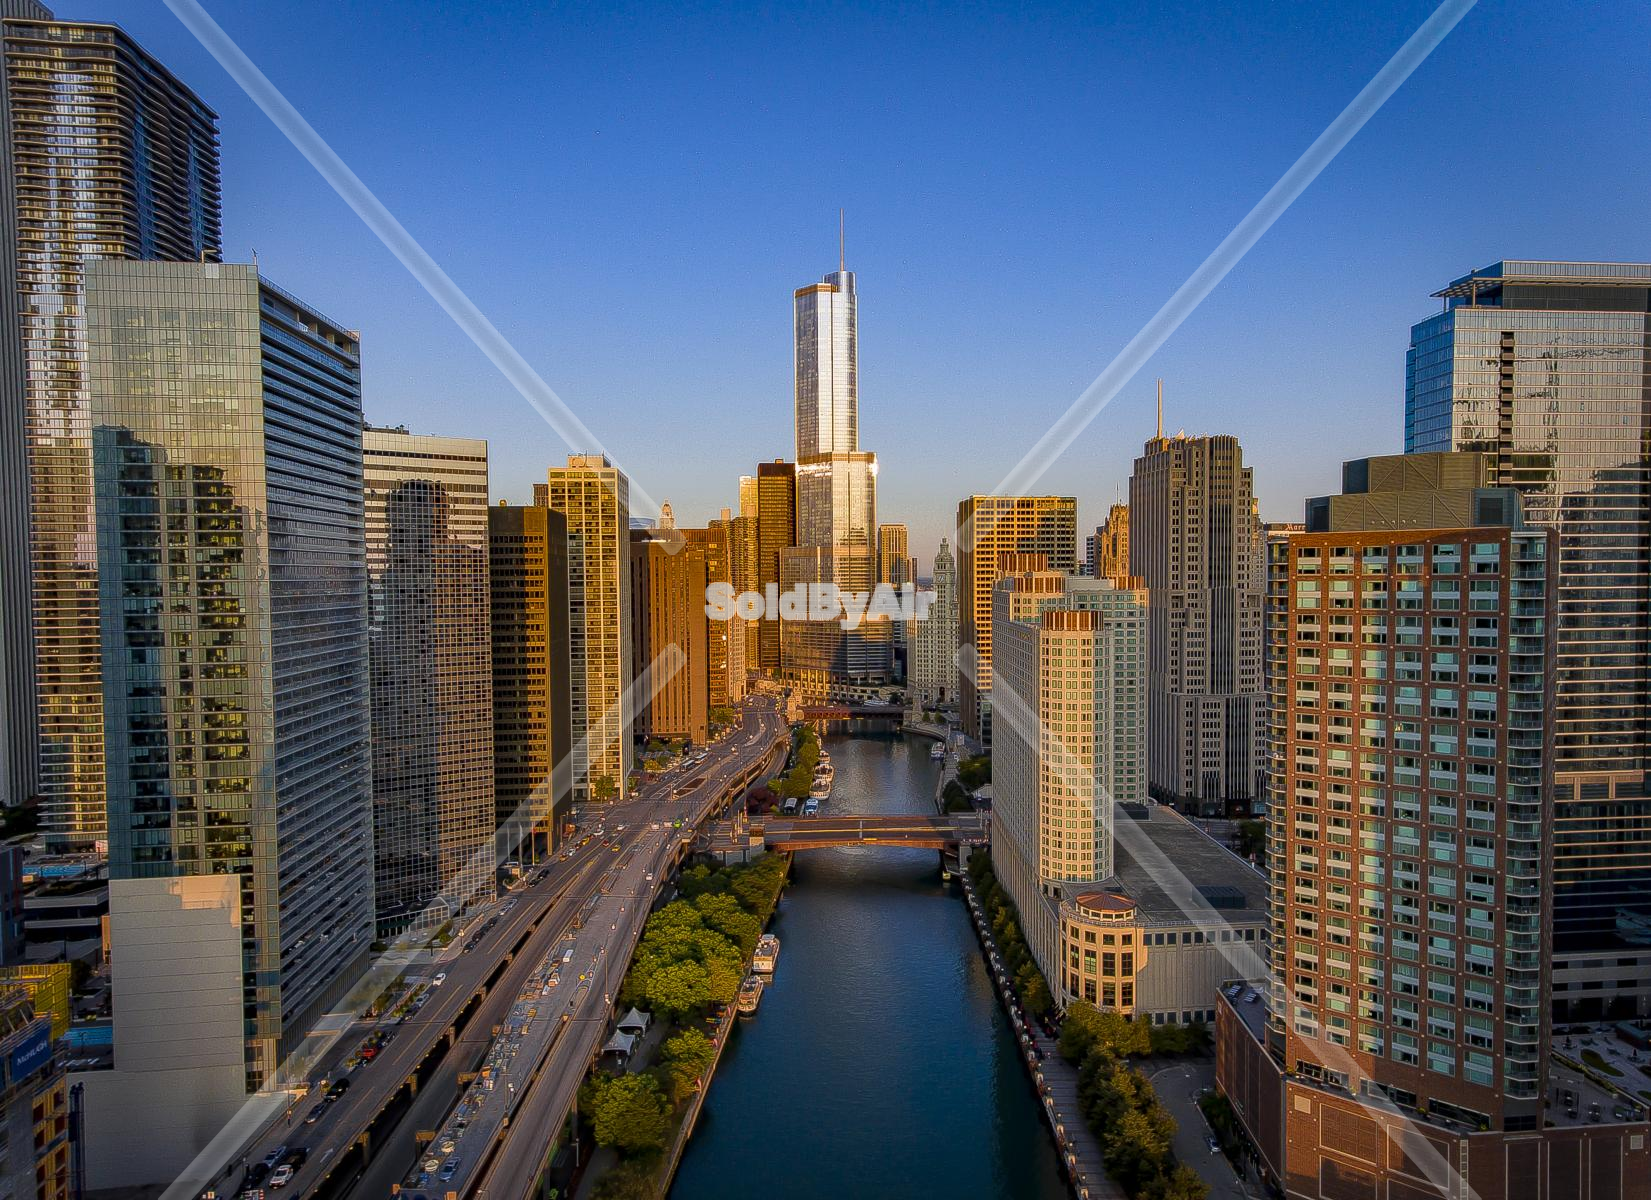 Drone Photo of Aerial Skyscrapers in Chicago Illinois